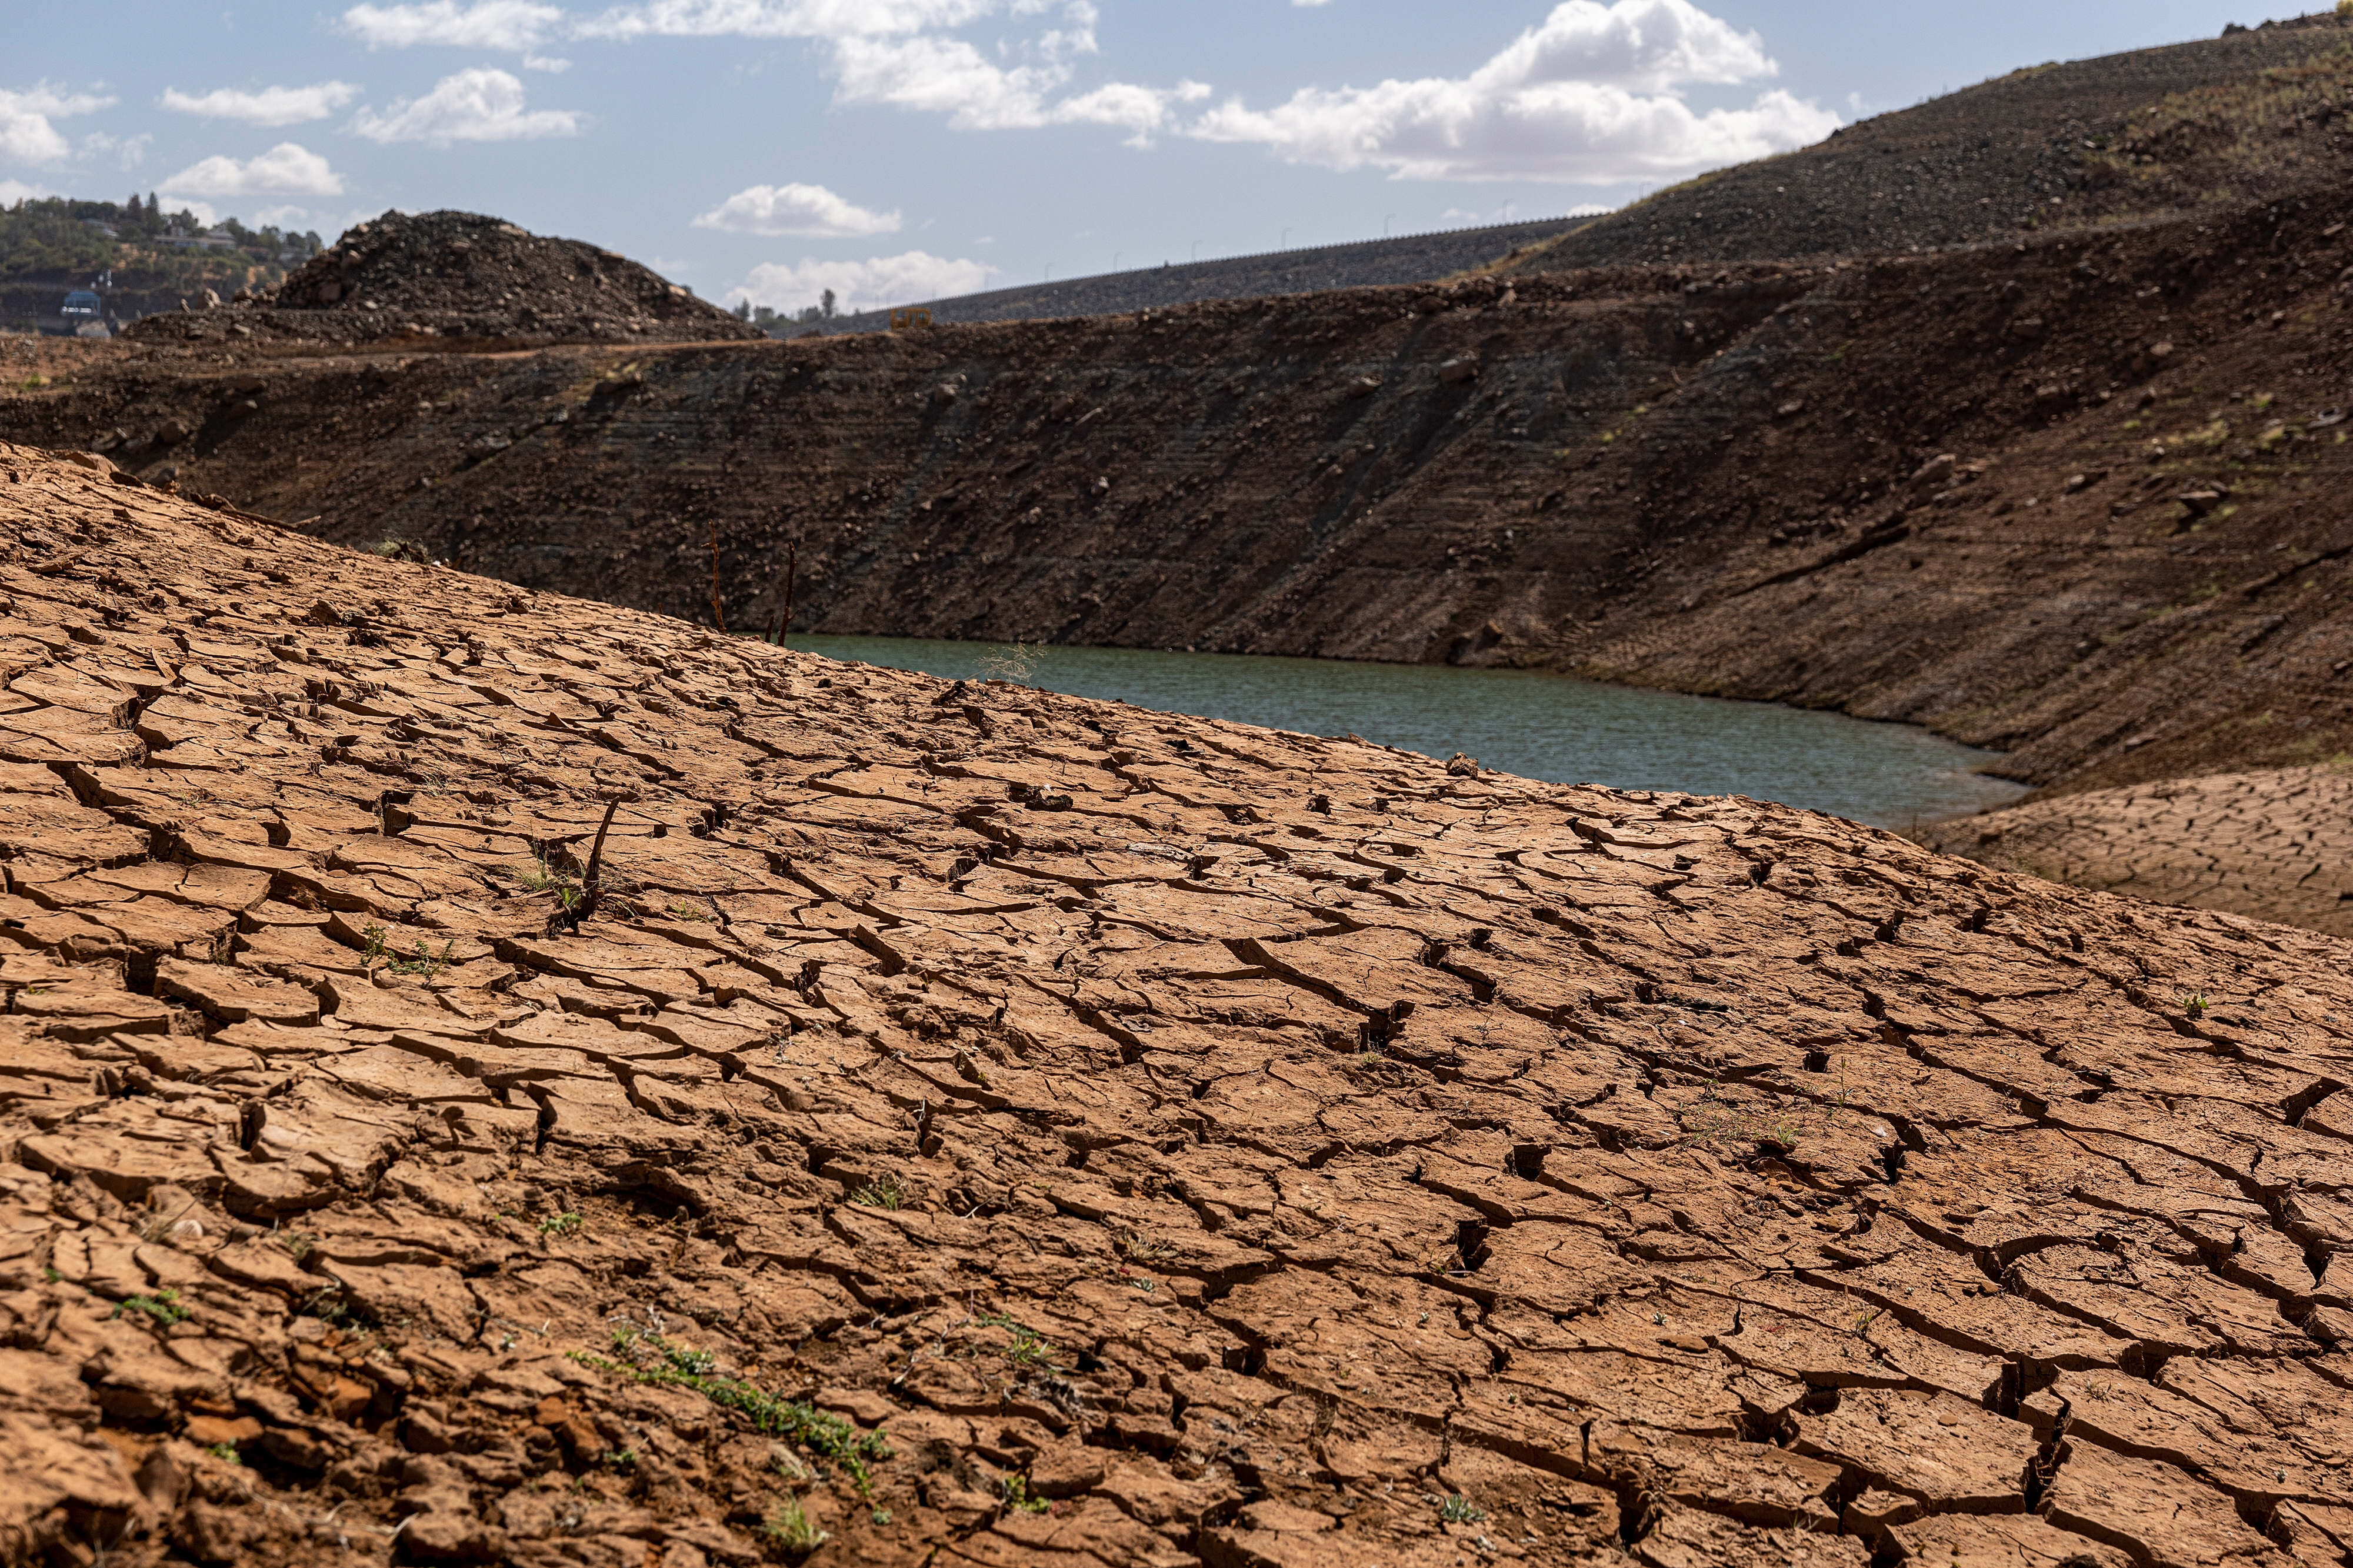 The drought in California this summer was the worst on record